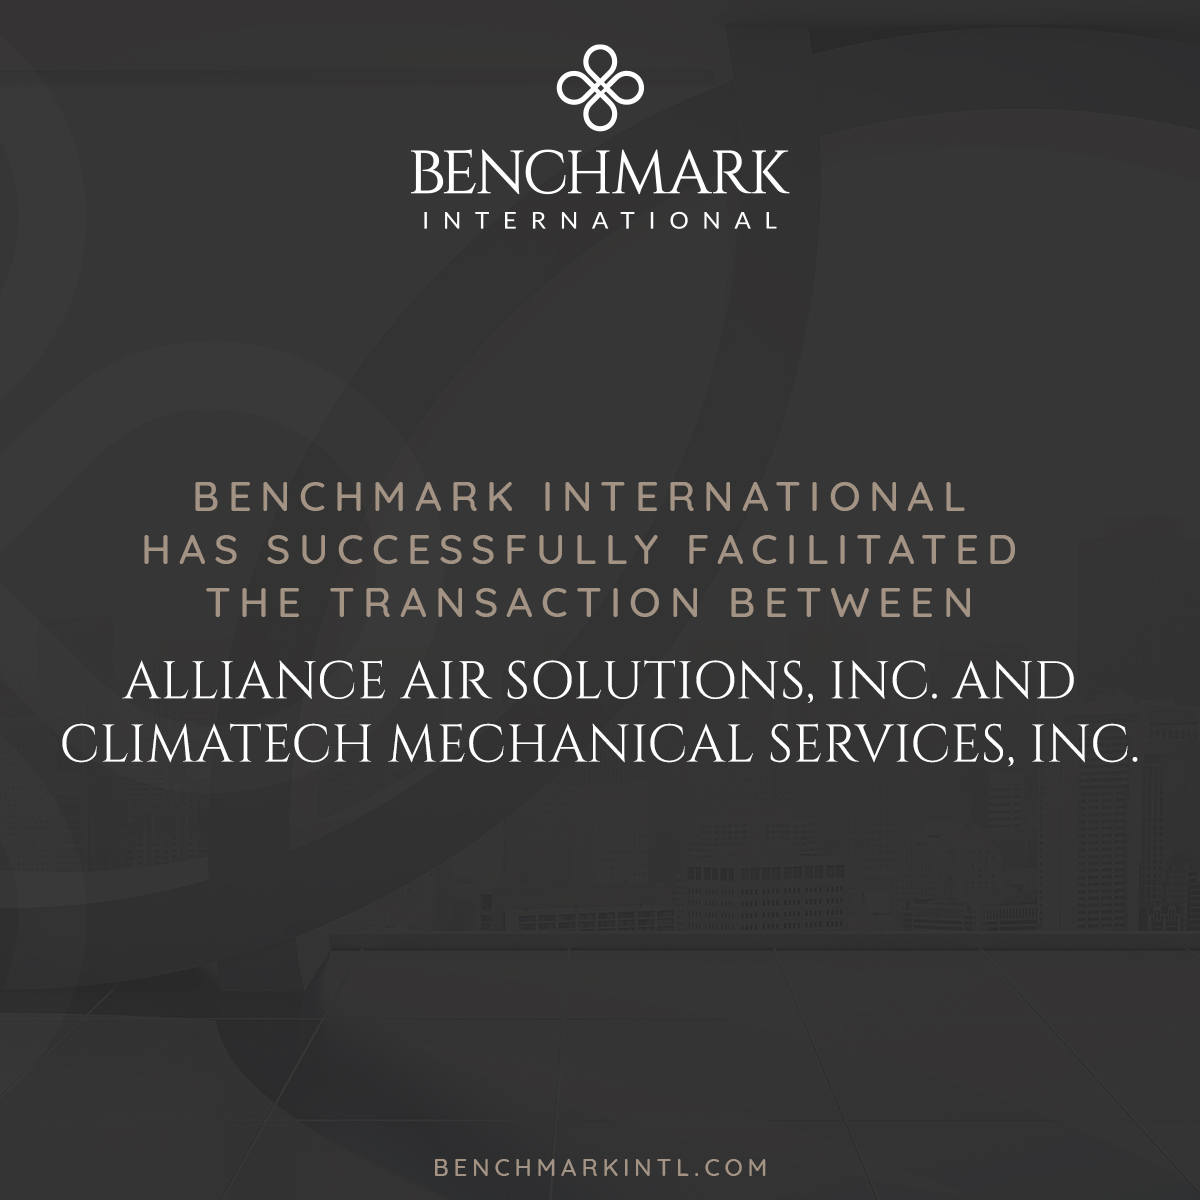 Alliance_Air_Solutions_&_Climatech_Mechanical_Services_Social